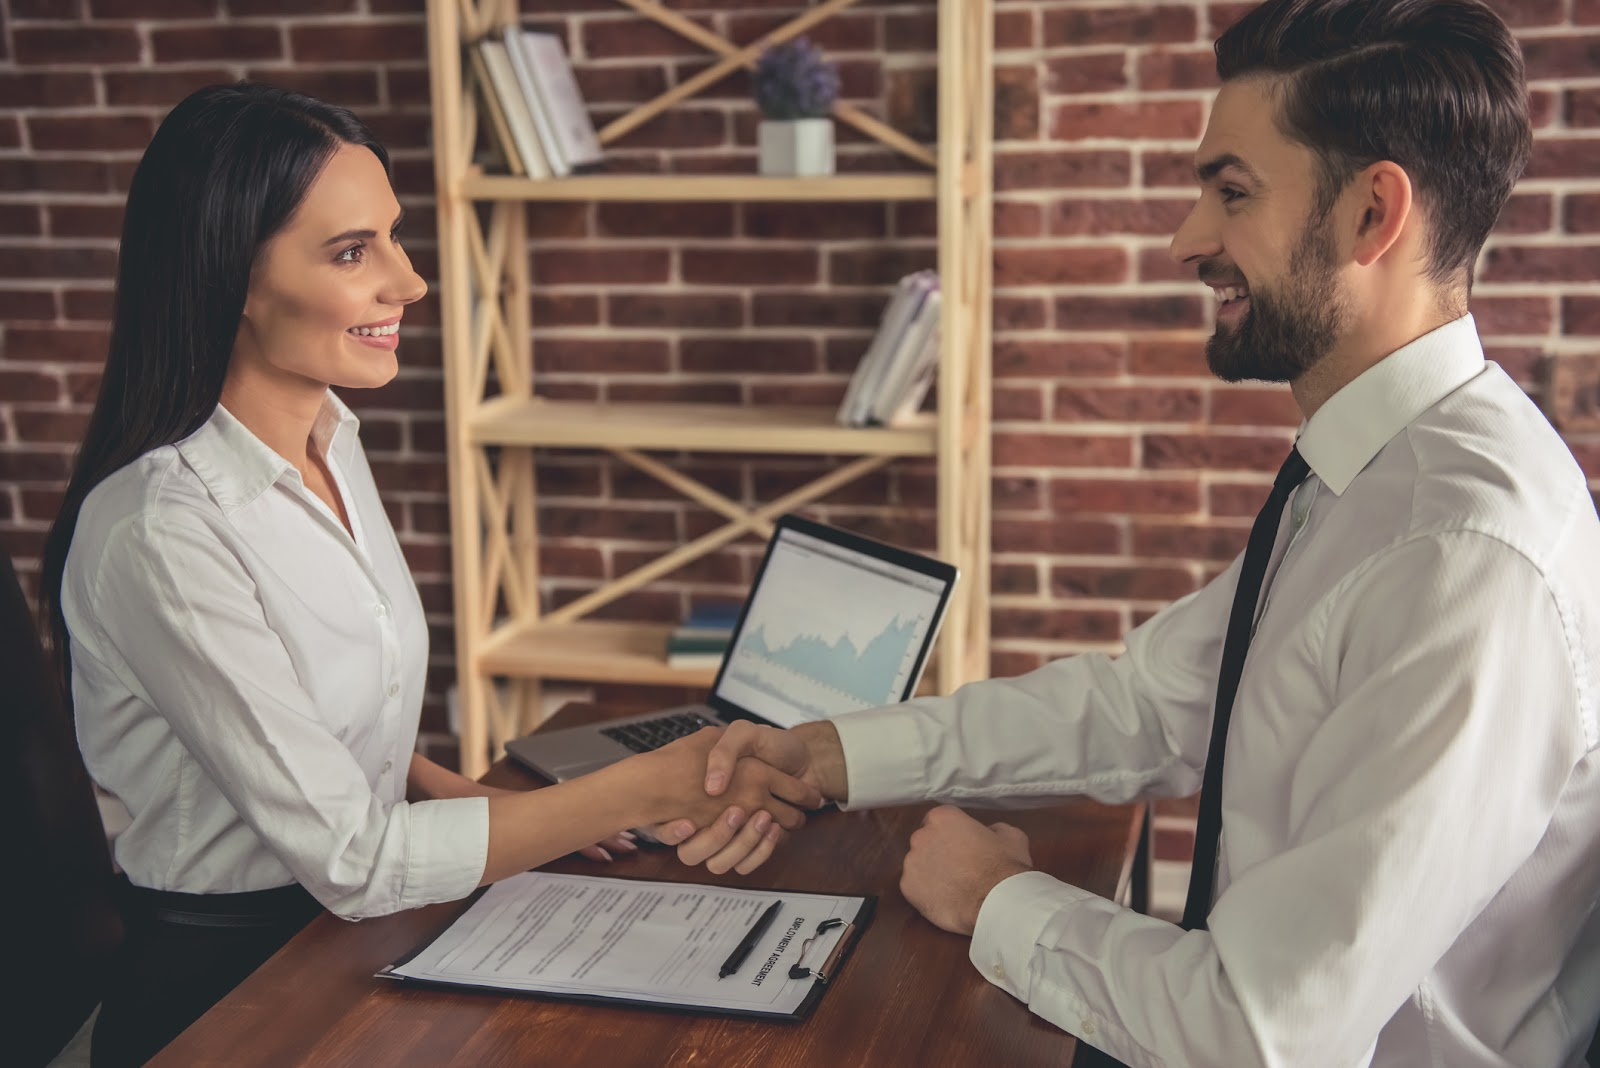 woman manager shaking hands in interview